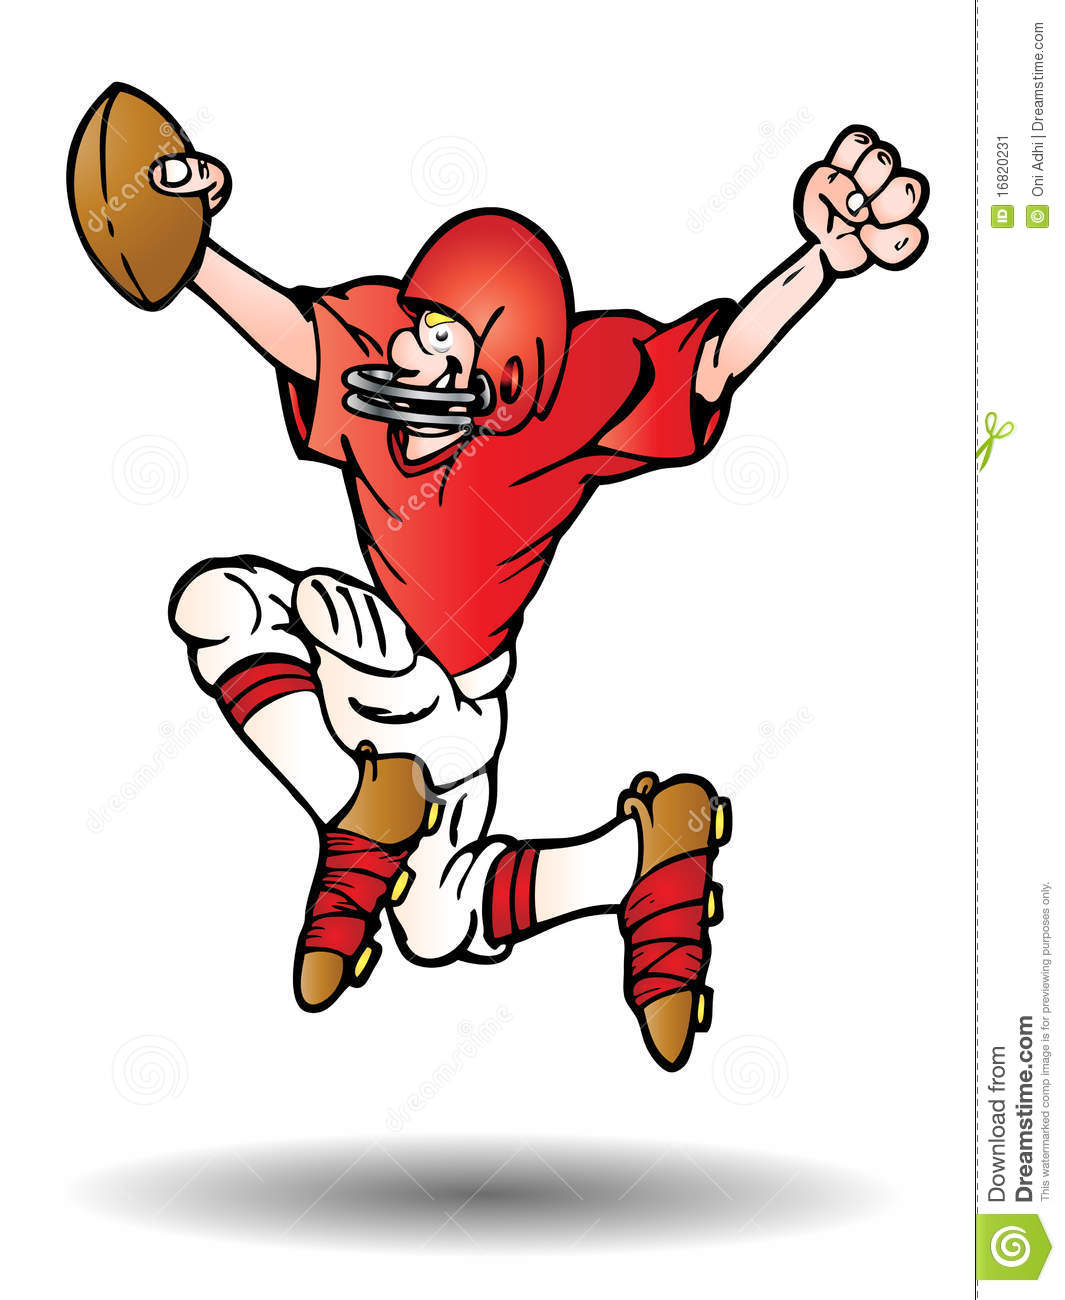 Kids Playing Flag Football Clipart - More information